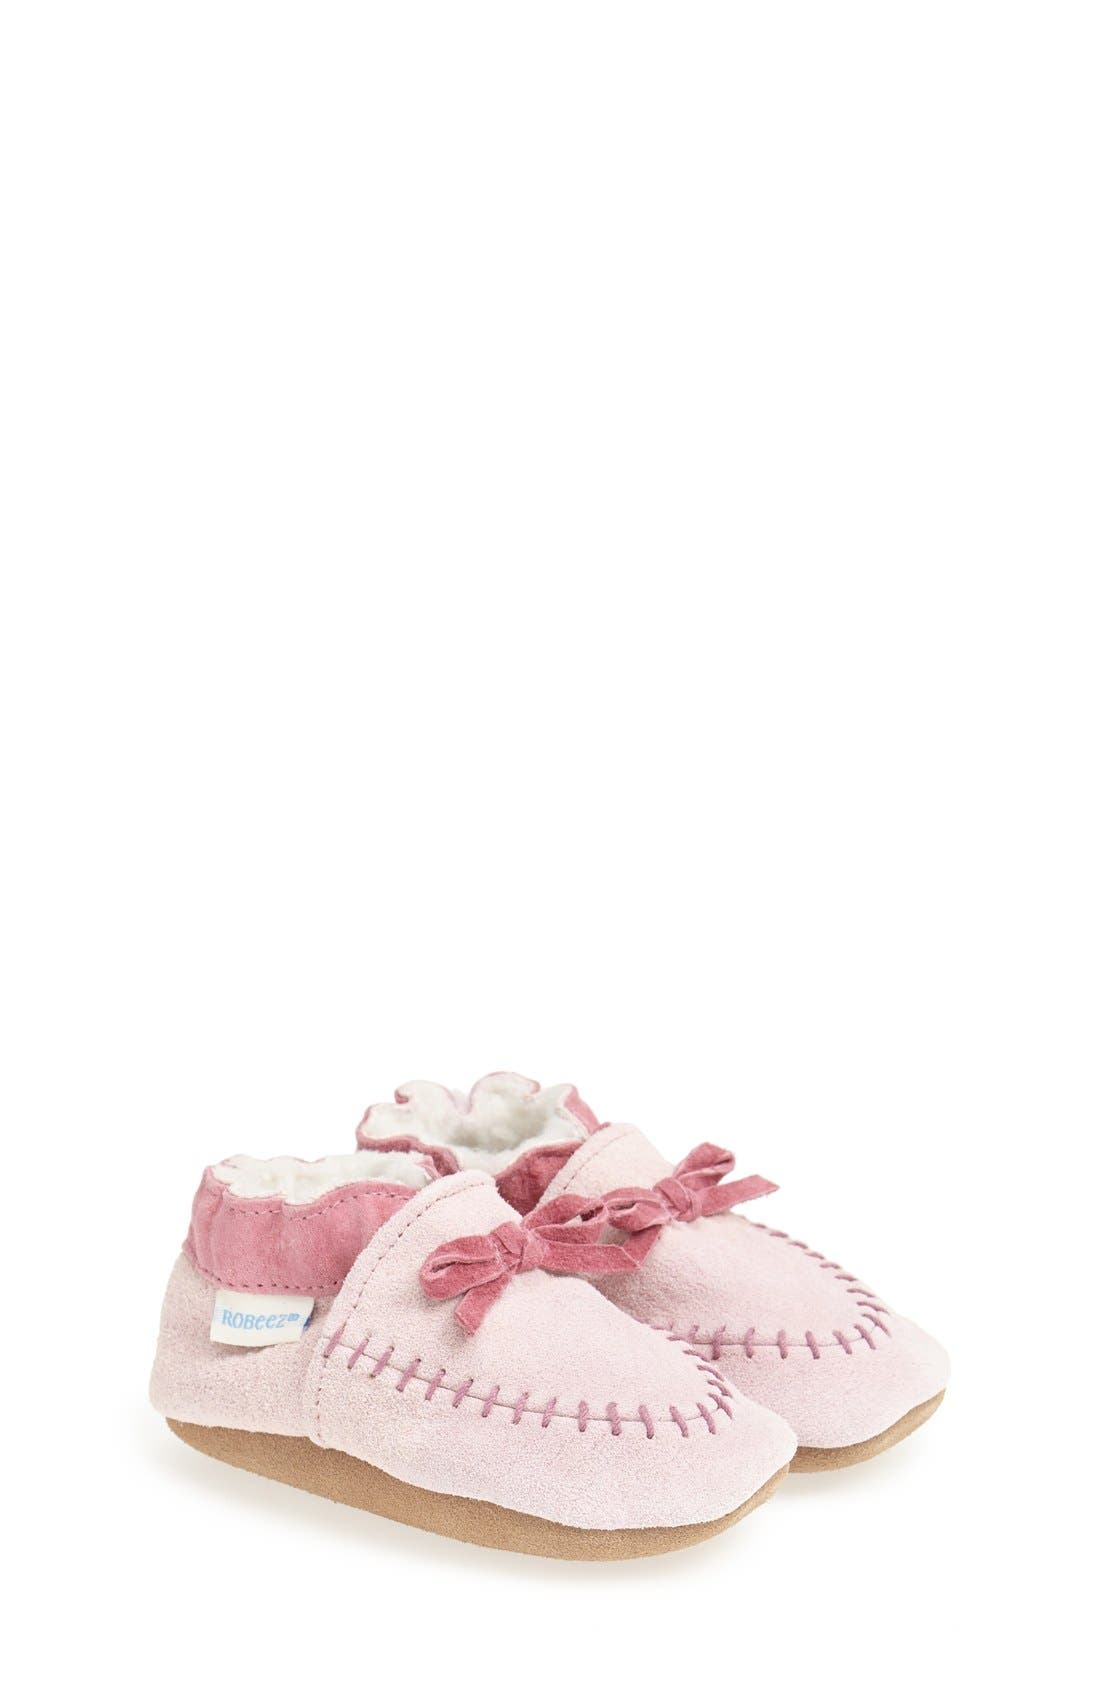 Cozy Moccasin Crib Shoe,                             Main thumbnail 1, color,                             PINK